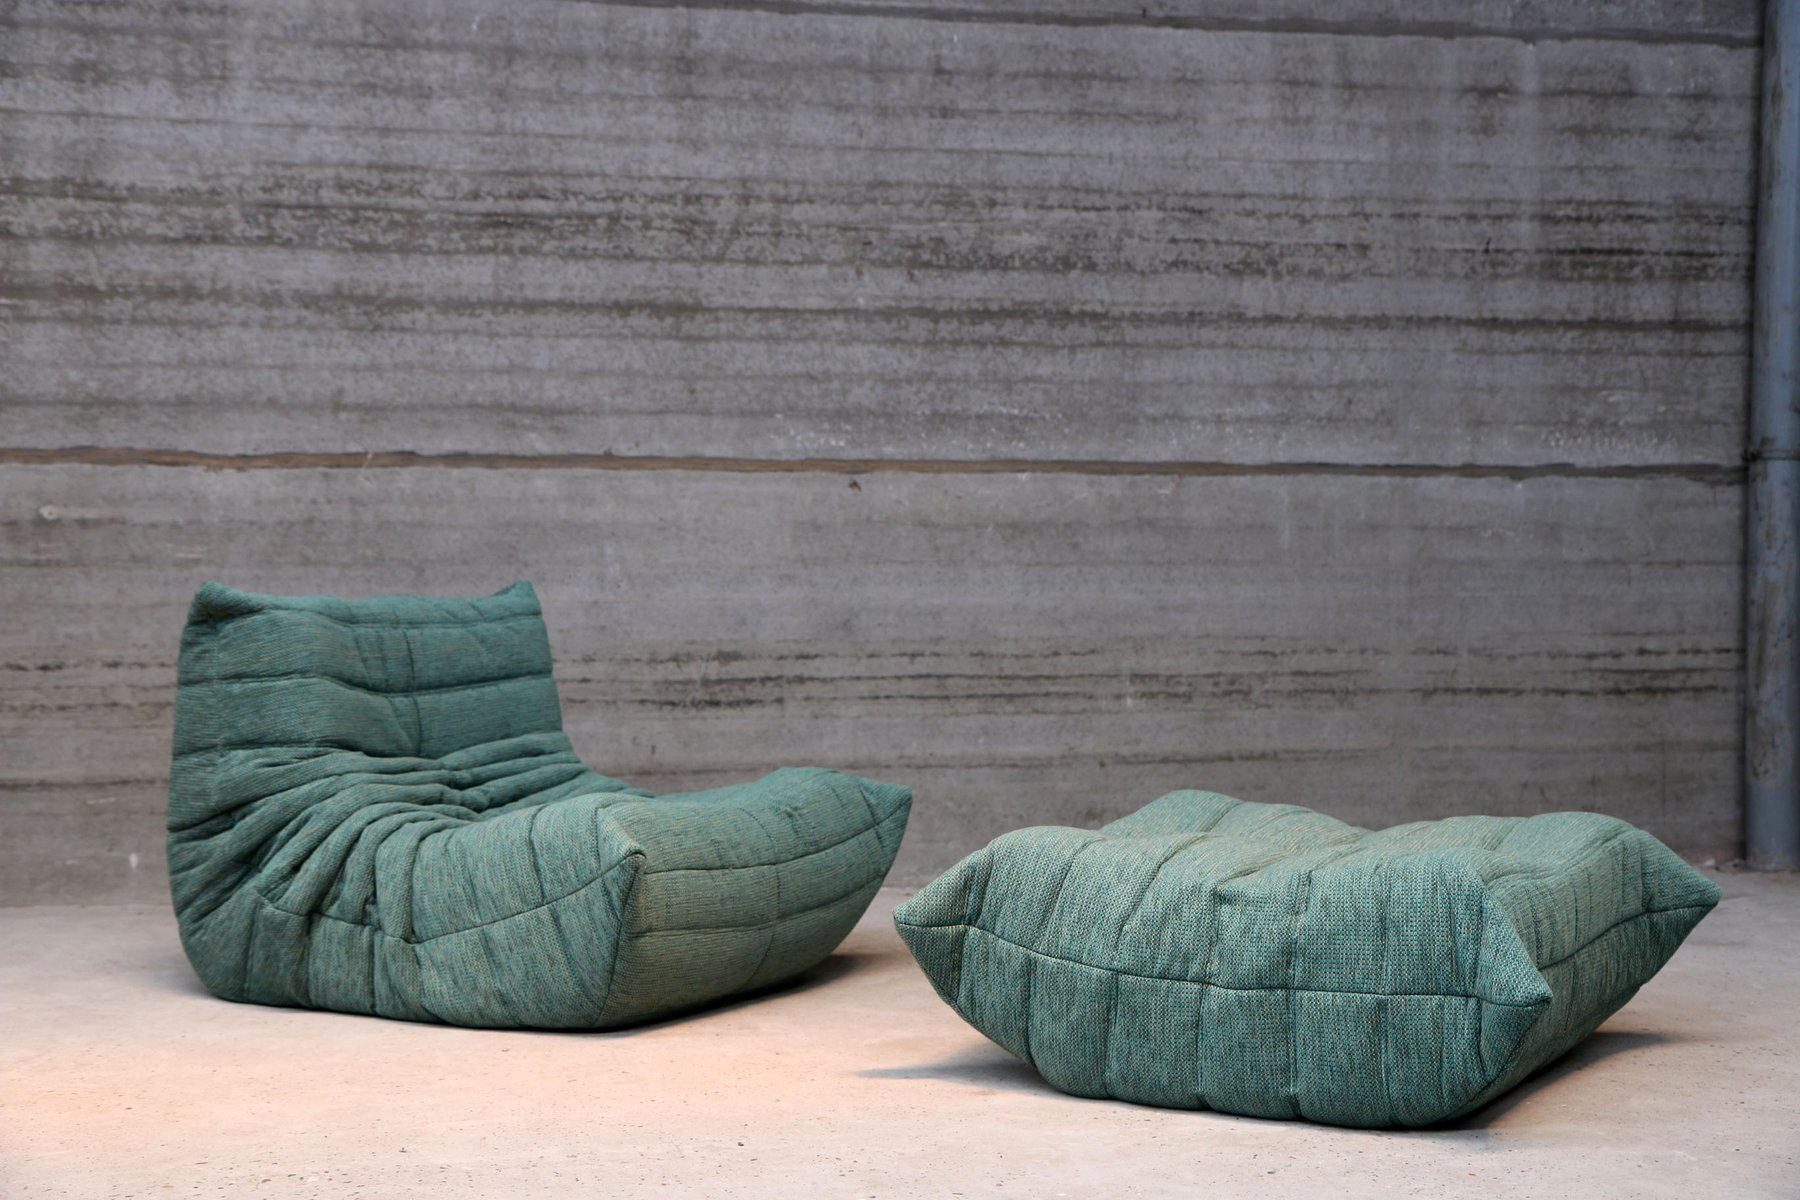 Vintage blue togo pouf by michel ducaroy for ligne roset set of 2 for sale at pamono - Togo ligne roset ...